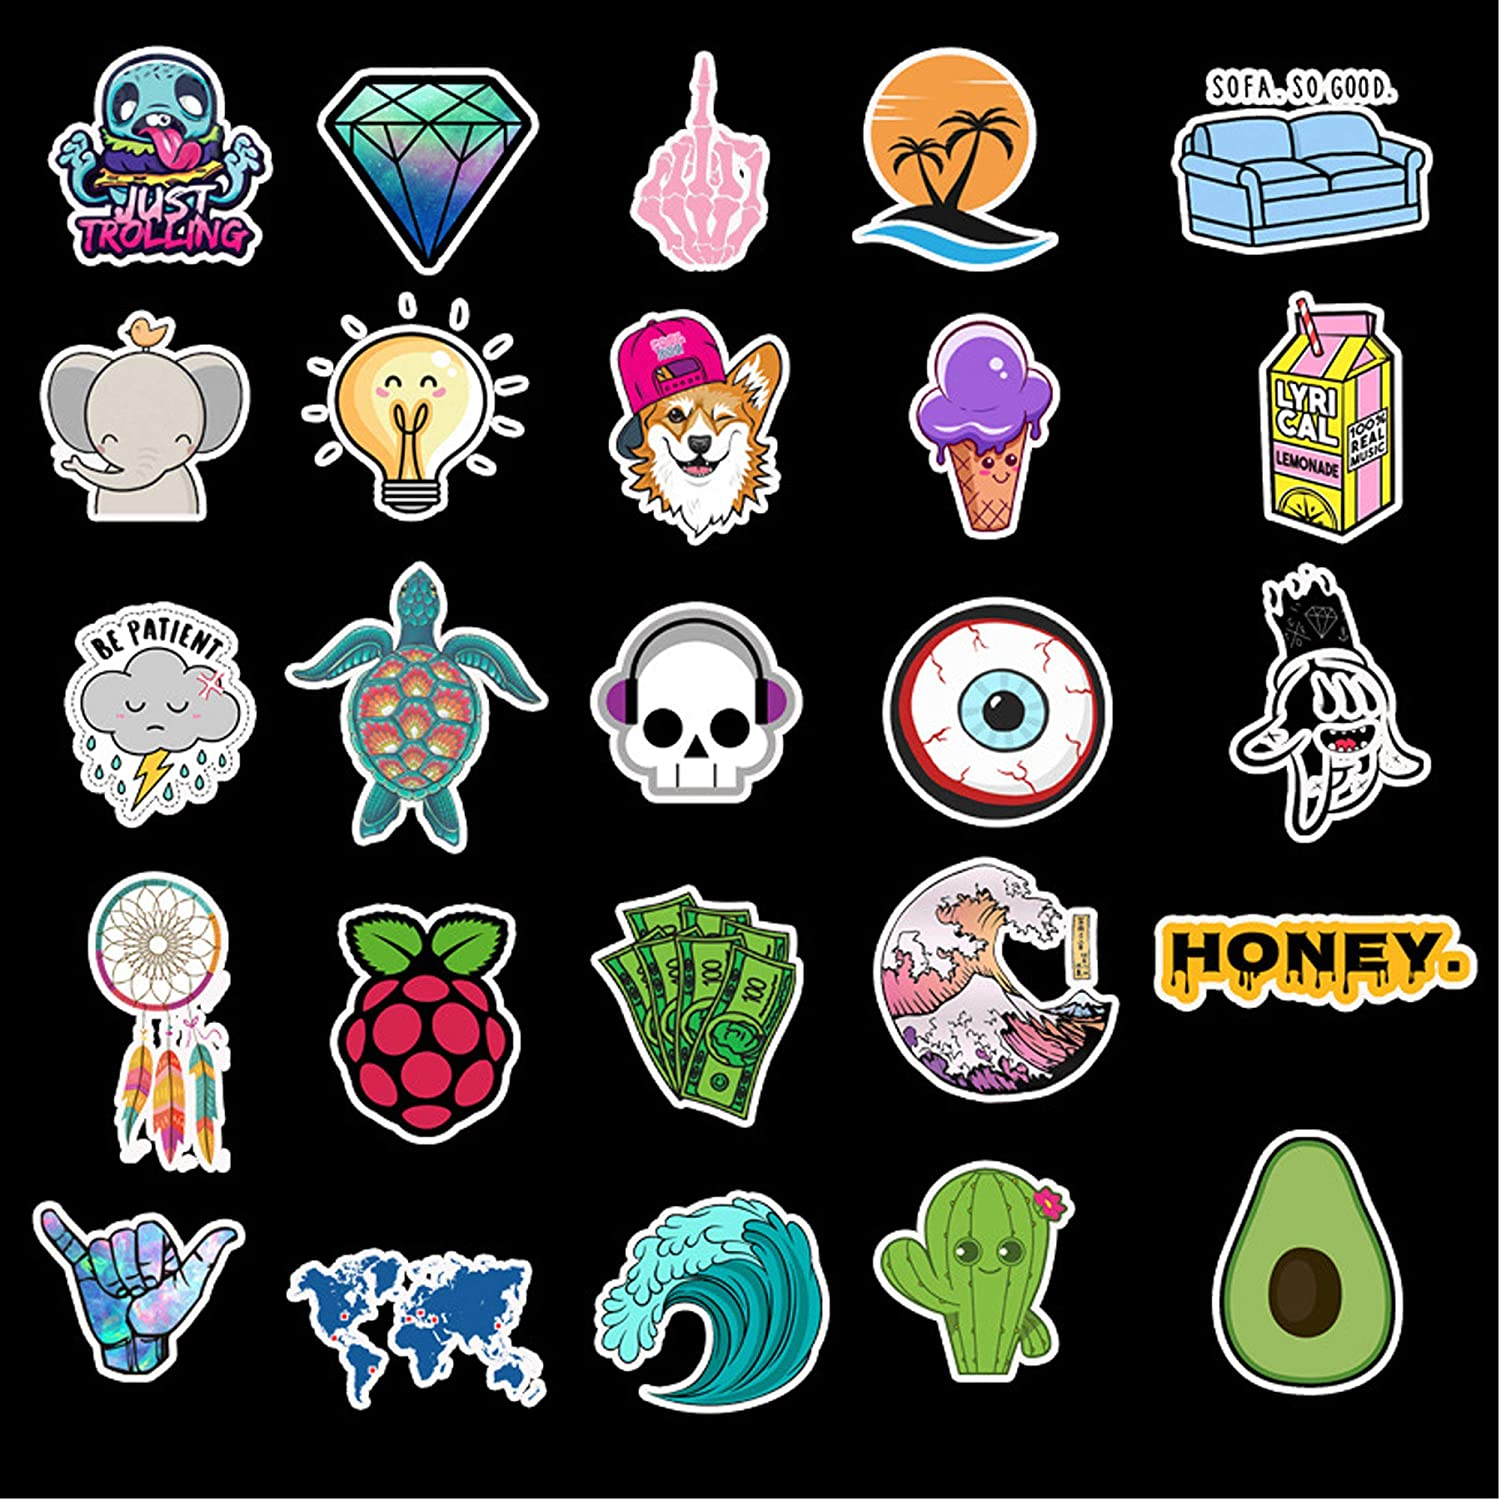 ONDY 50pcs Astronaut Space Graffiti Stickers Suitcase Skateboard Guitar Travel Case Door Decals Water Bottle Laptop Luggage Car Bike Bicycle Clings Super Waterproof Astronaut Space